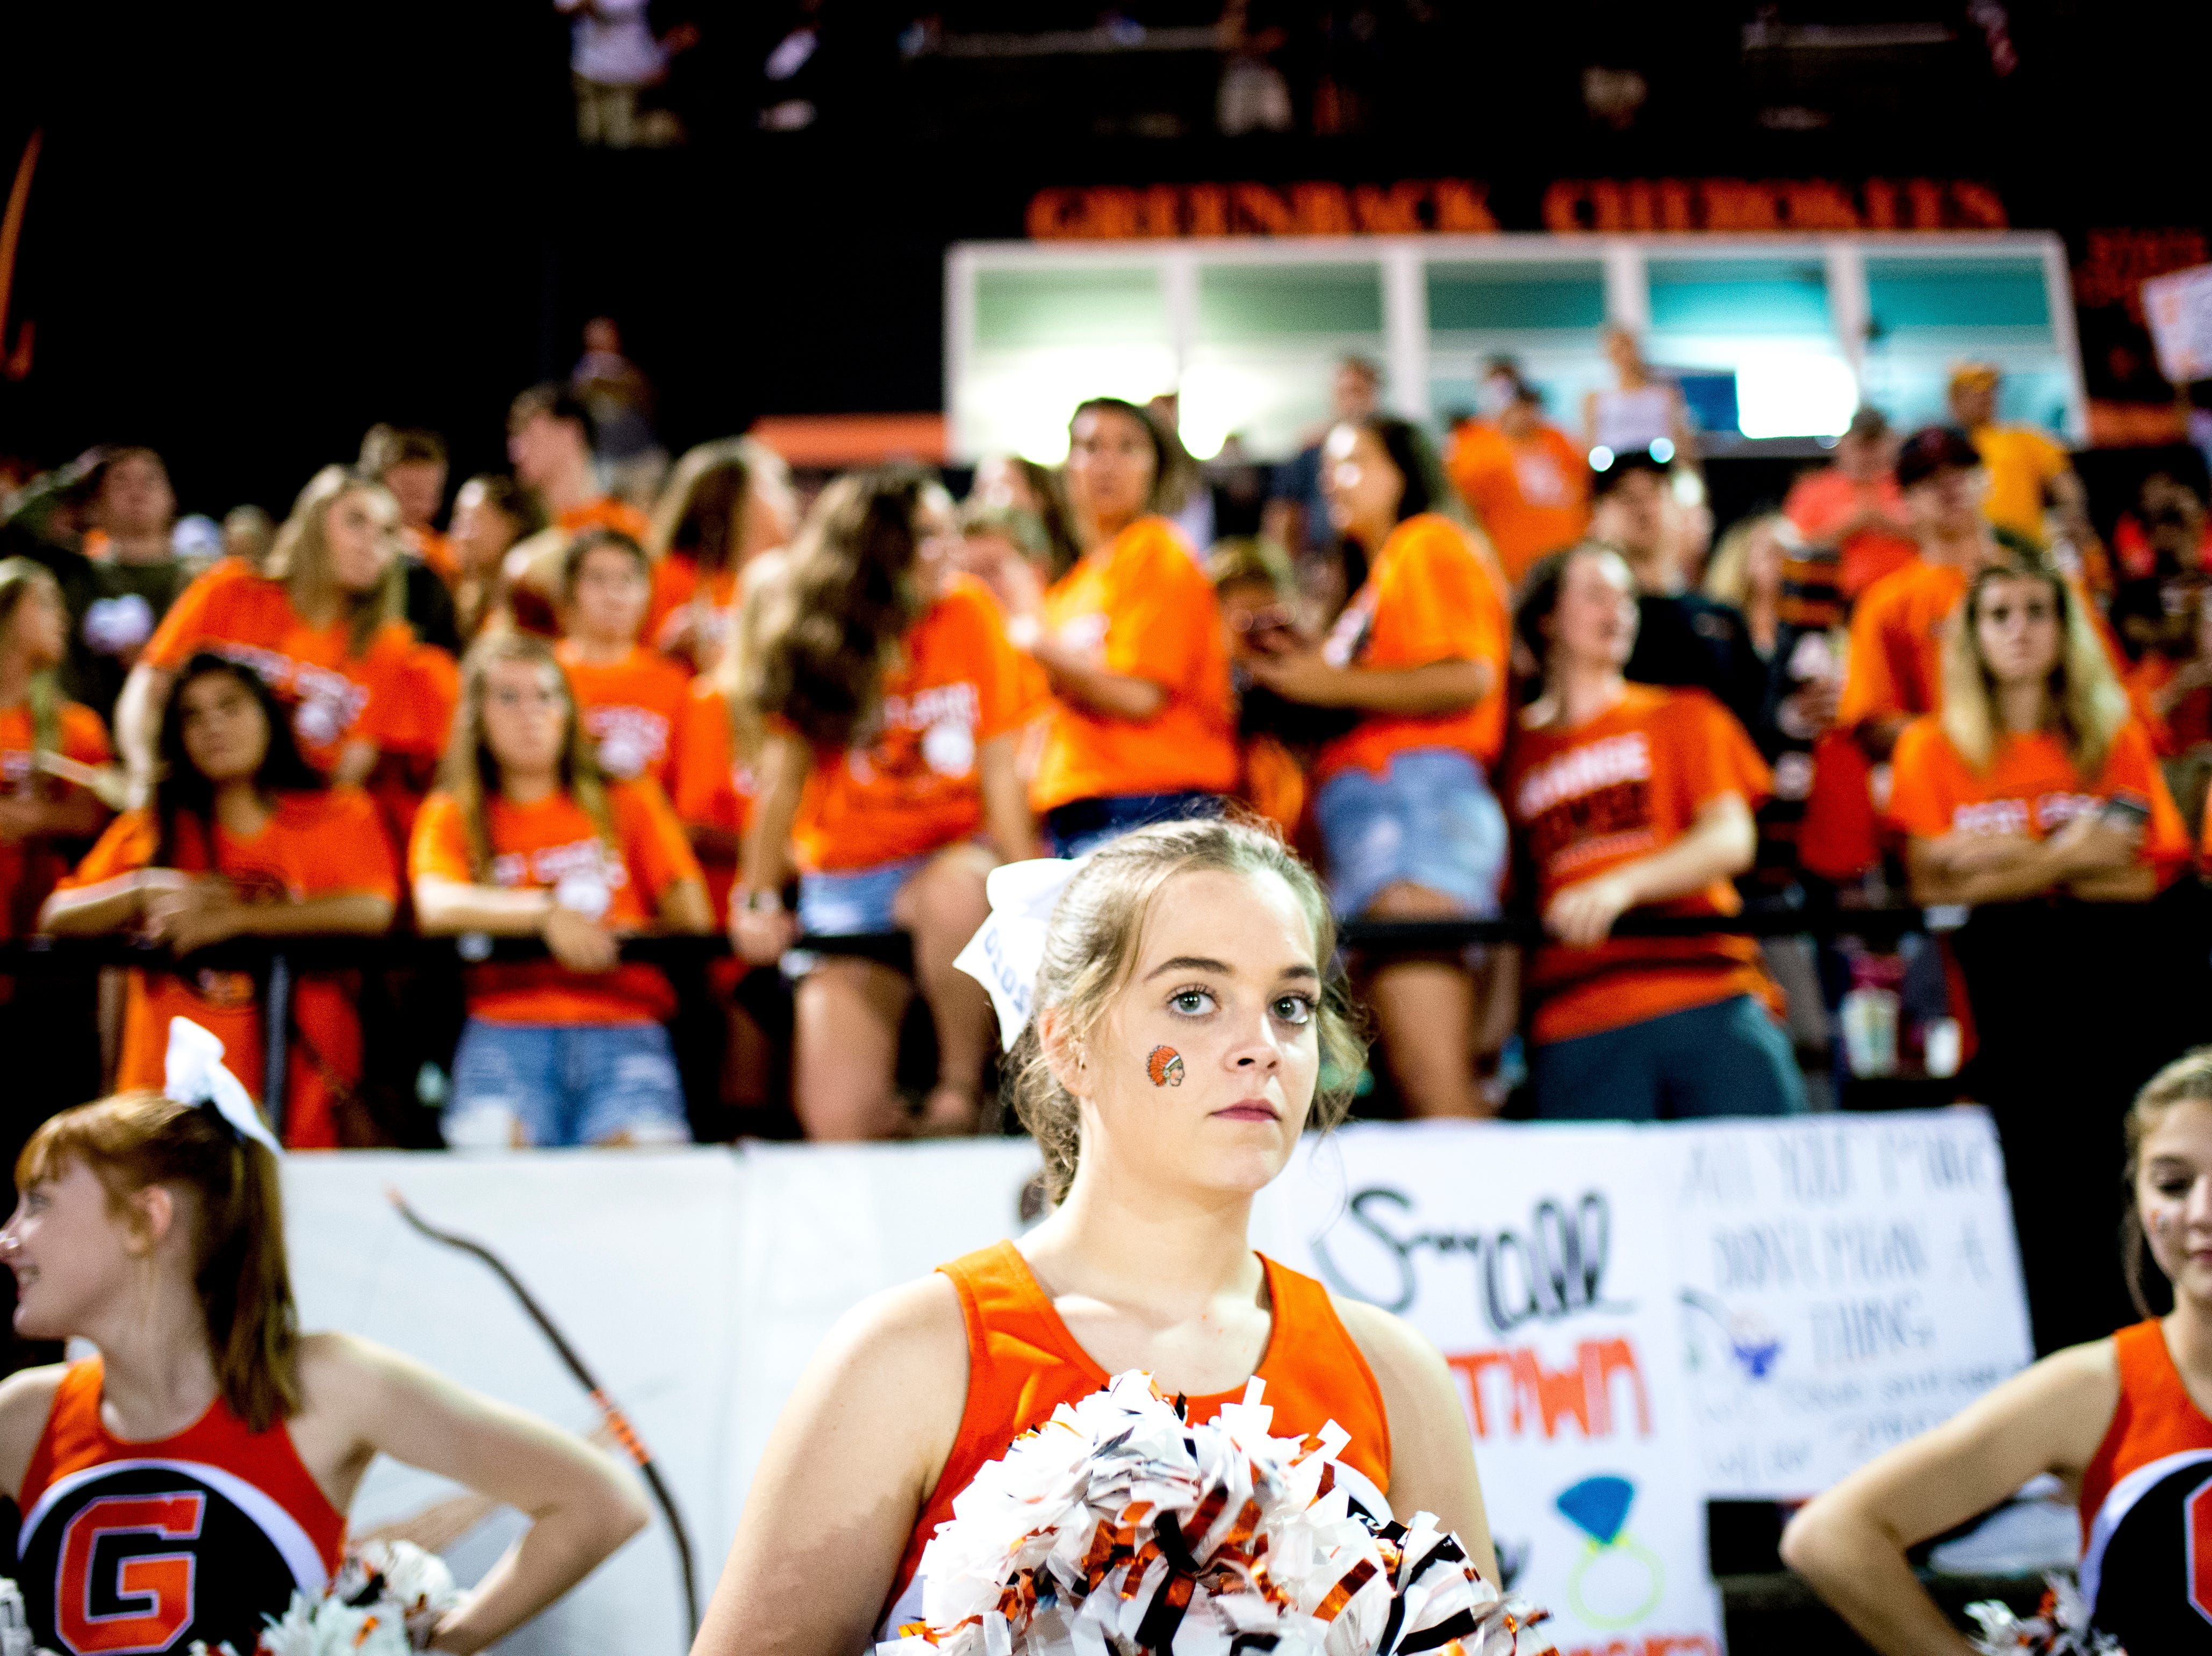 Greenback cheerleaders watch the game during a football game between Greenback and Grace Christian at Greenback High School in Greenback, Tennessee on Thursday, September 20, 2018.